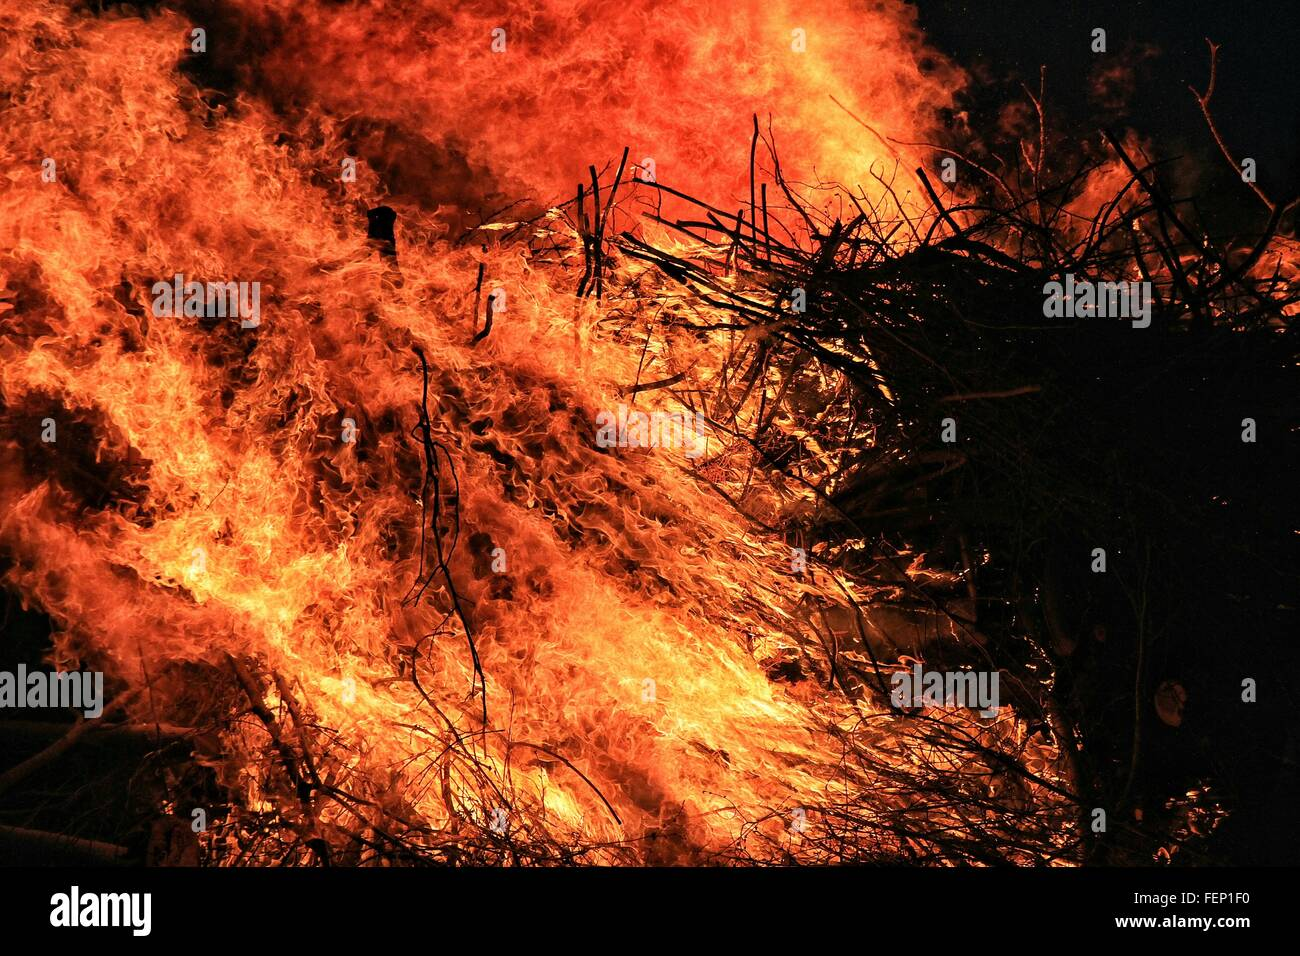 Close-Up Of Fire - Stock Image